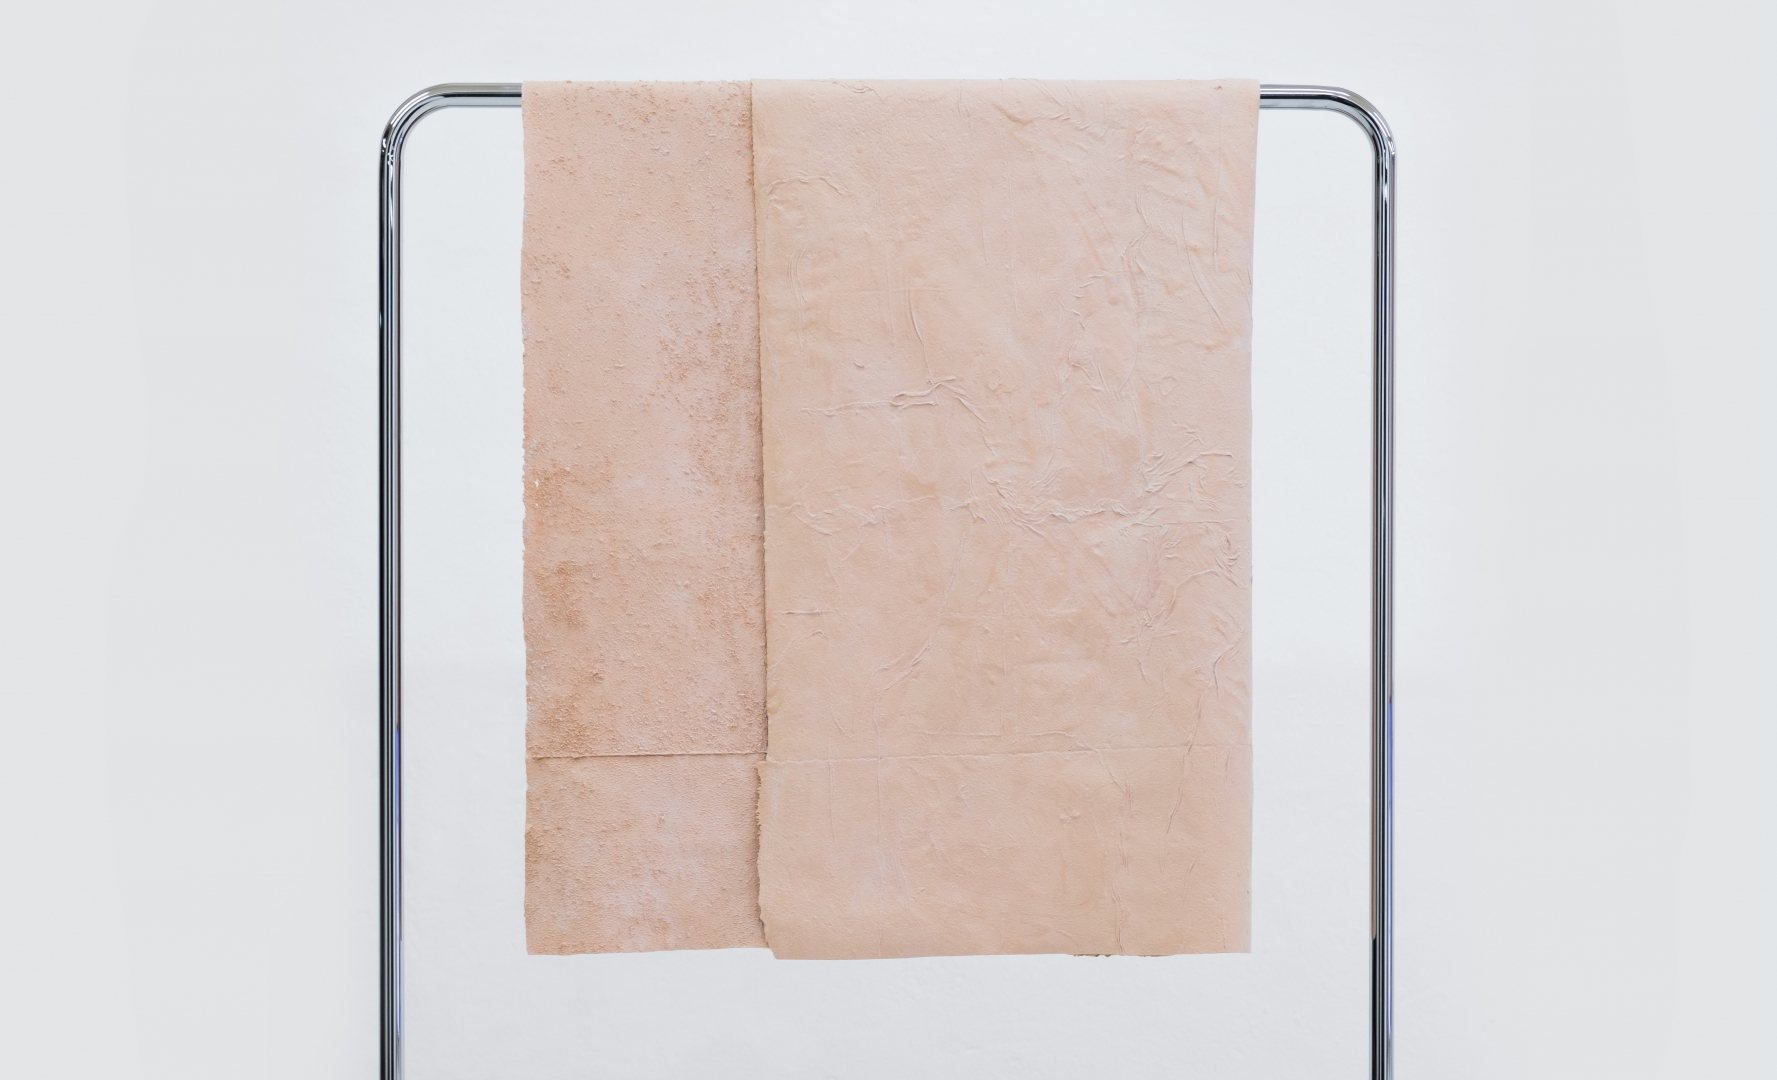 TOWEL 1 from Towel Collection 2017 130x80x3 cm latex, pigment, crome stand